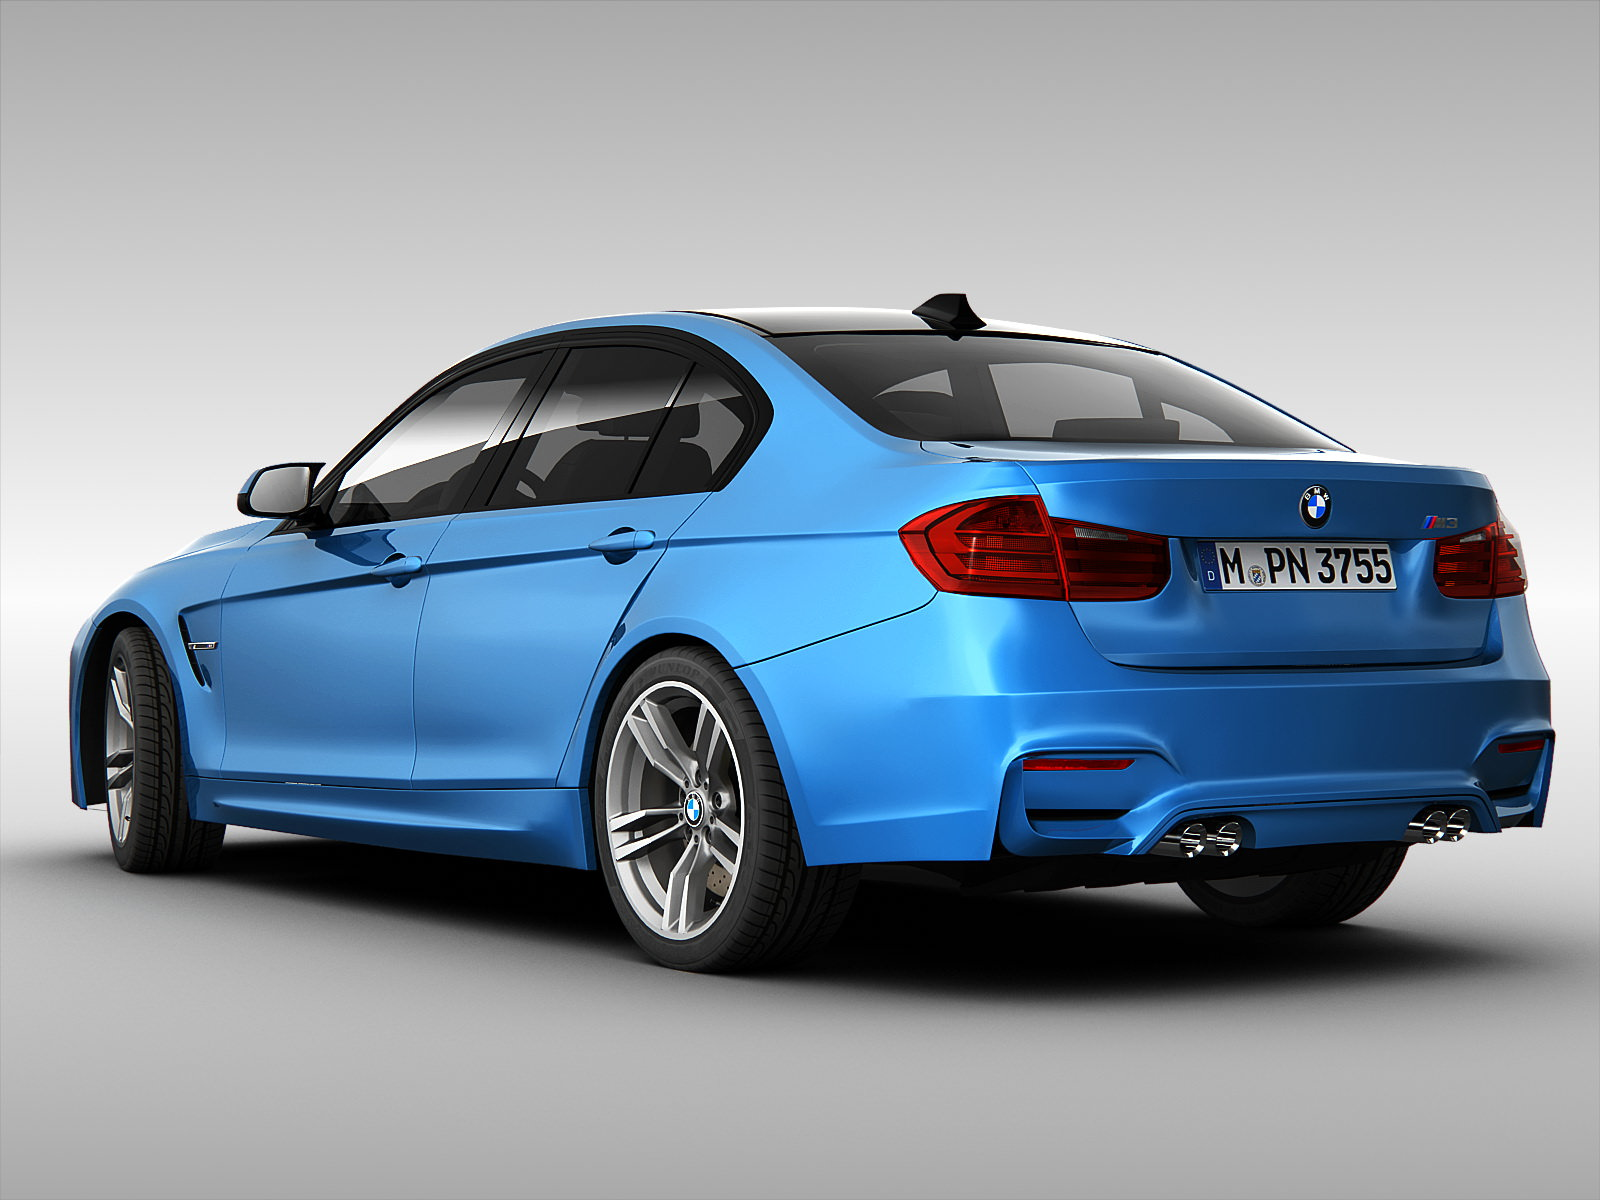 bmw m3 sedan f30 2015 3d model max obj 3ds fbx. Black Bedroom Furniture Sets. Home Design Ideas